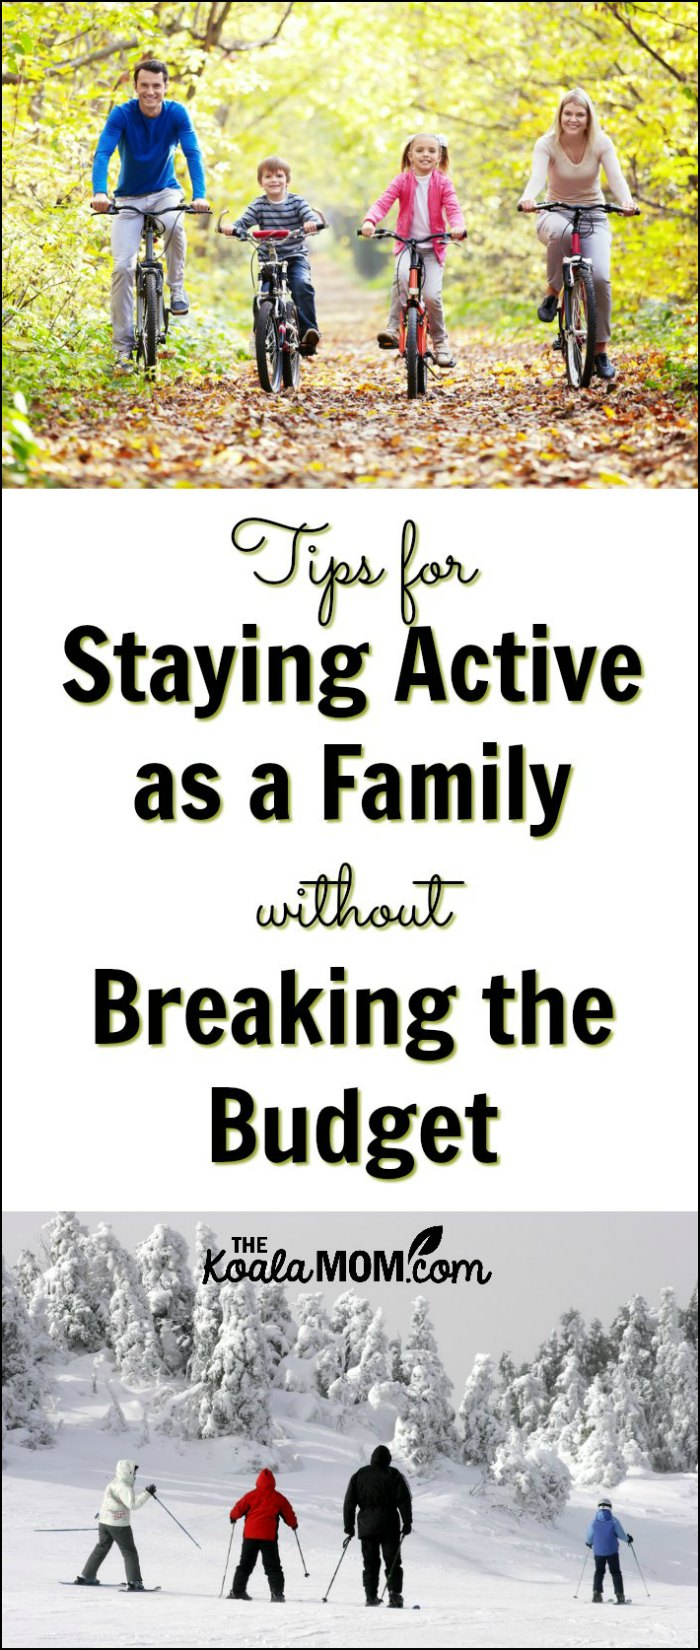 How to Stay Active as a Family without Breaking the Budget - a mom of five shares her tips for getting the family out biking, skiing, walking, skating, etc. without spending too much money!